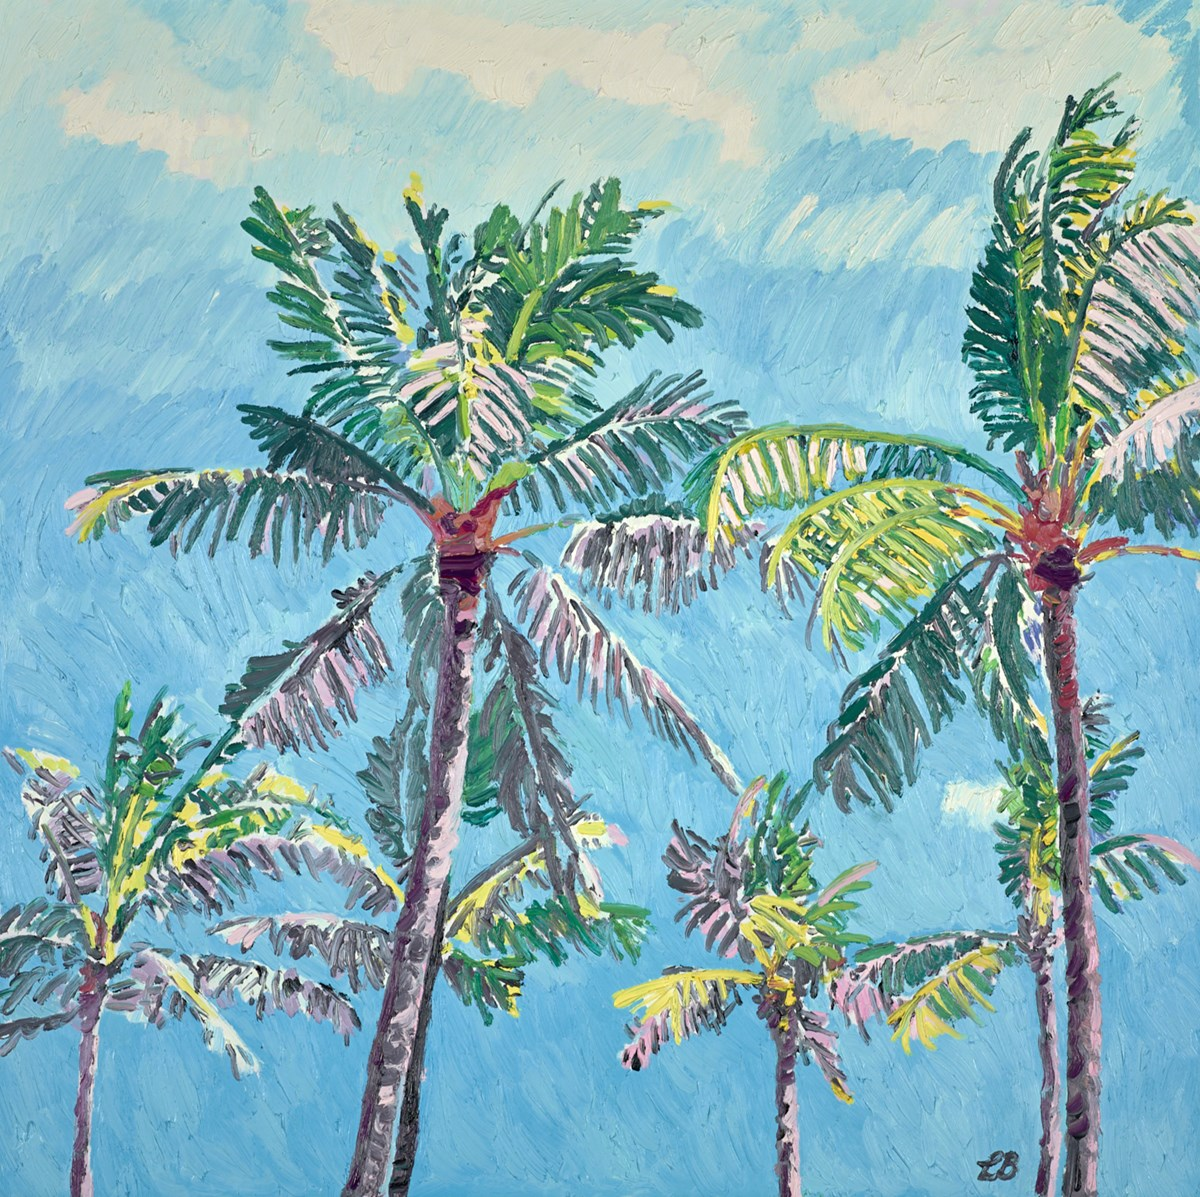 Cerulean Skies and Sunlit Palms